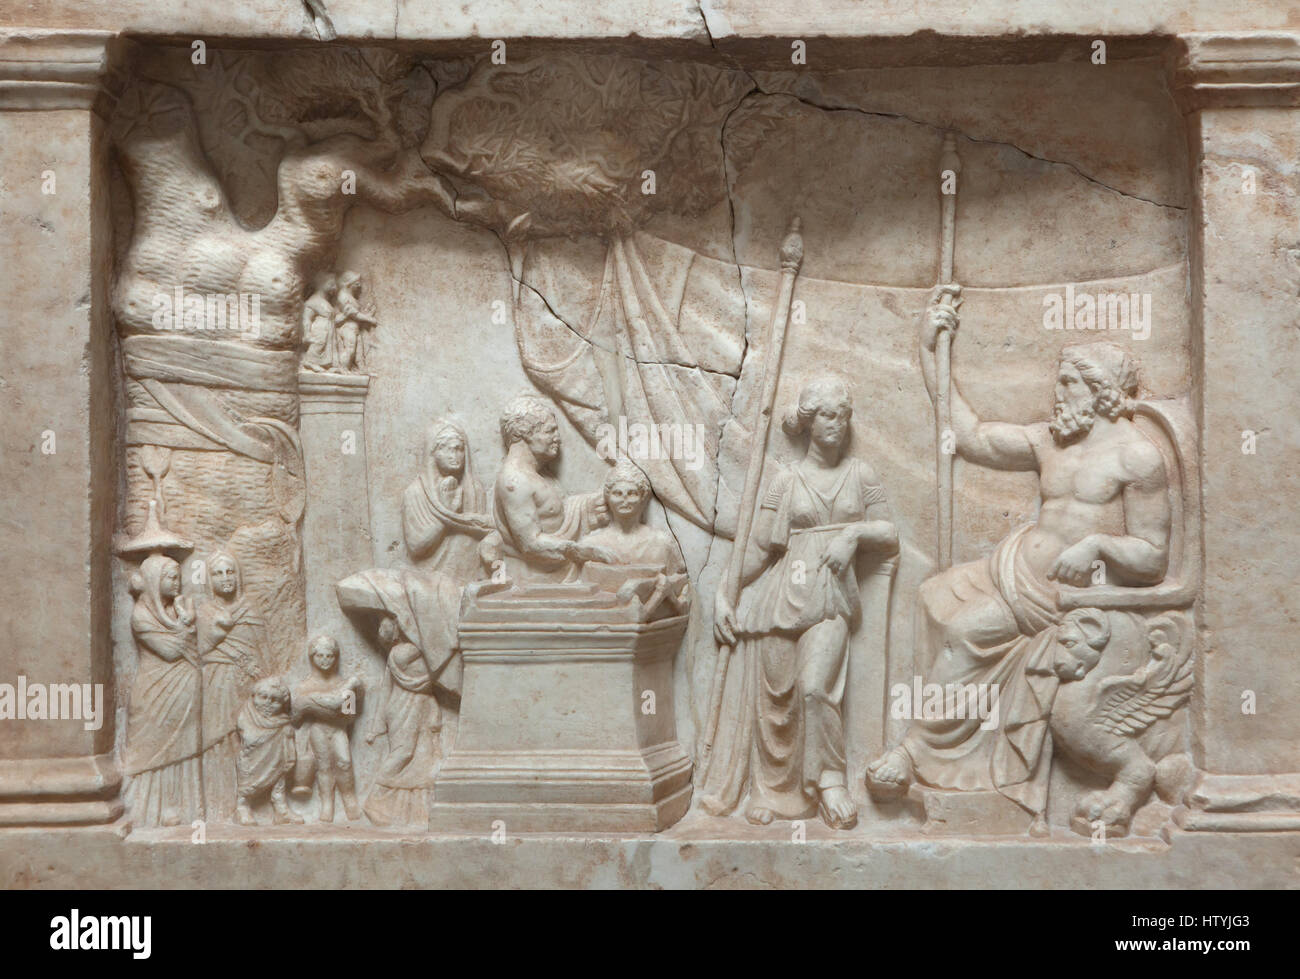 Munich Votive Relief. Greek votive relief from about 220 BC on display in the Glyptothek Museum in Munich, Bavaria, - Stock Image